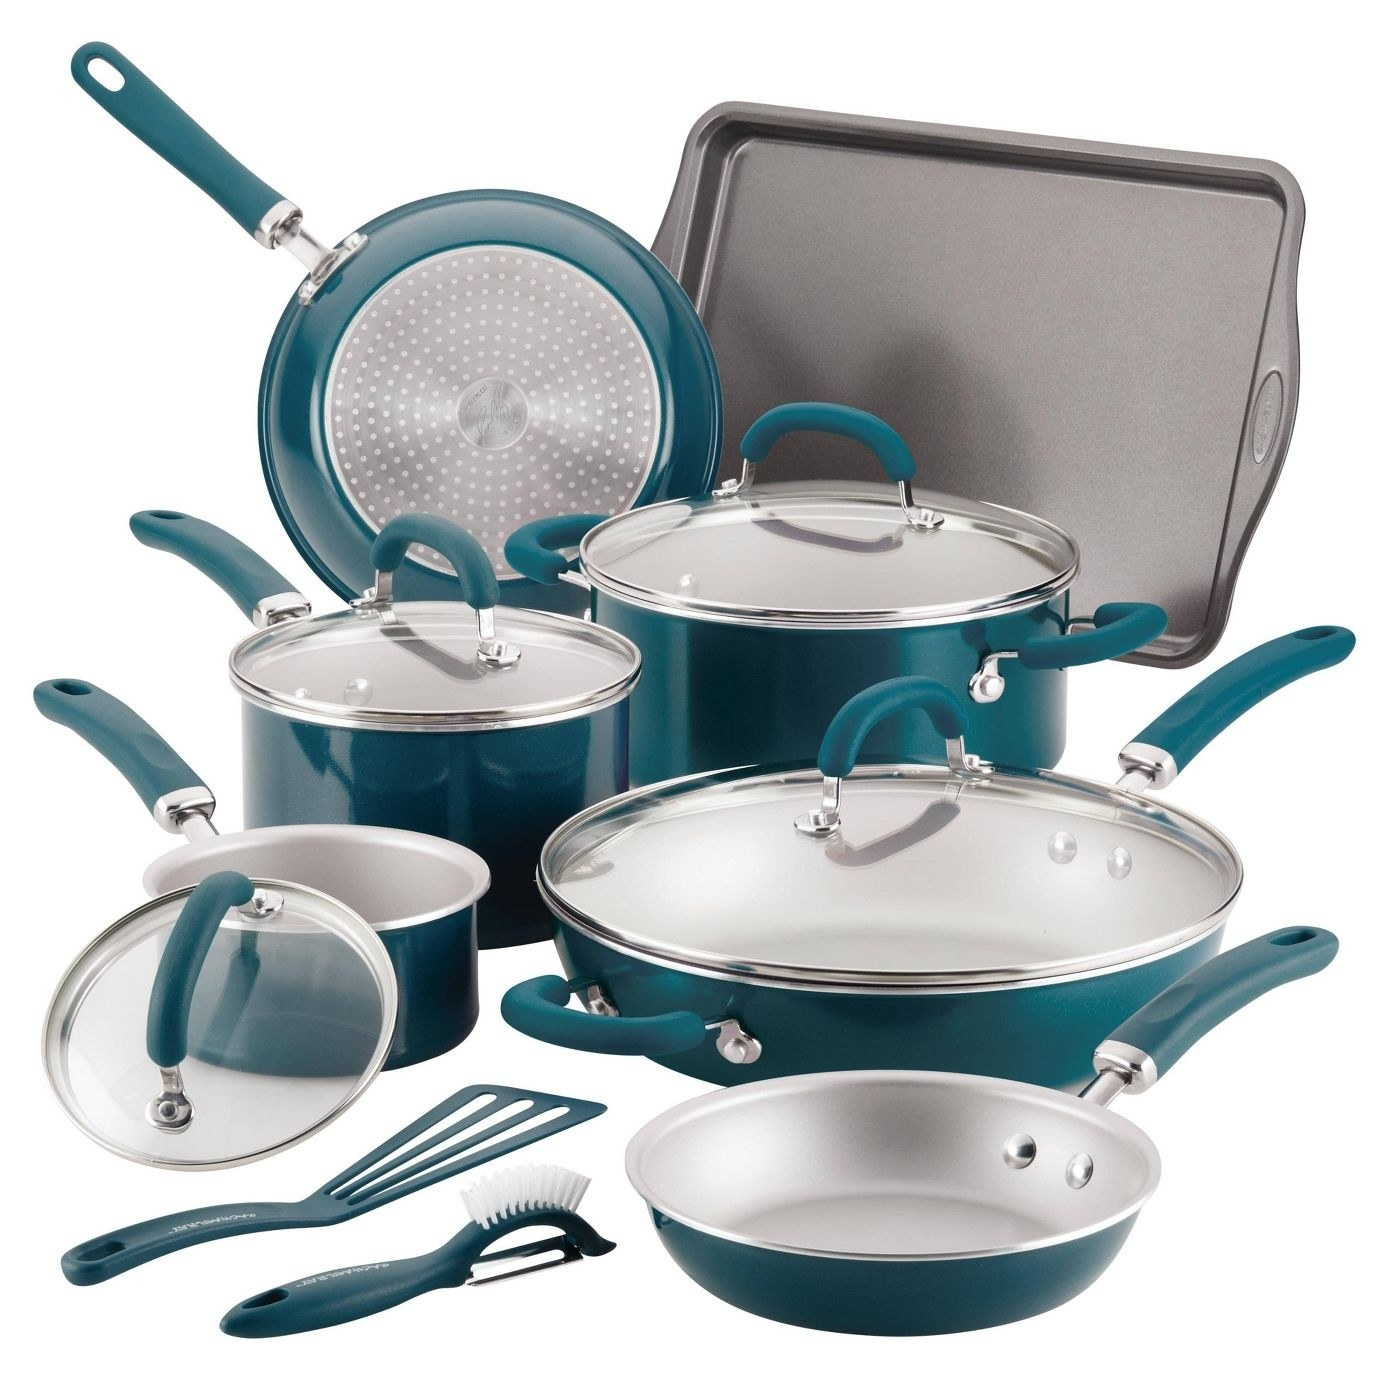 six different pots and pants in a turquoise blue color